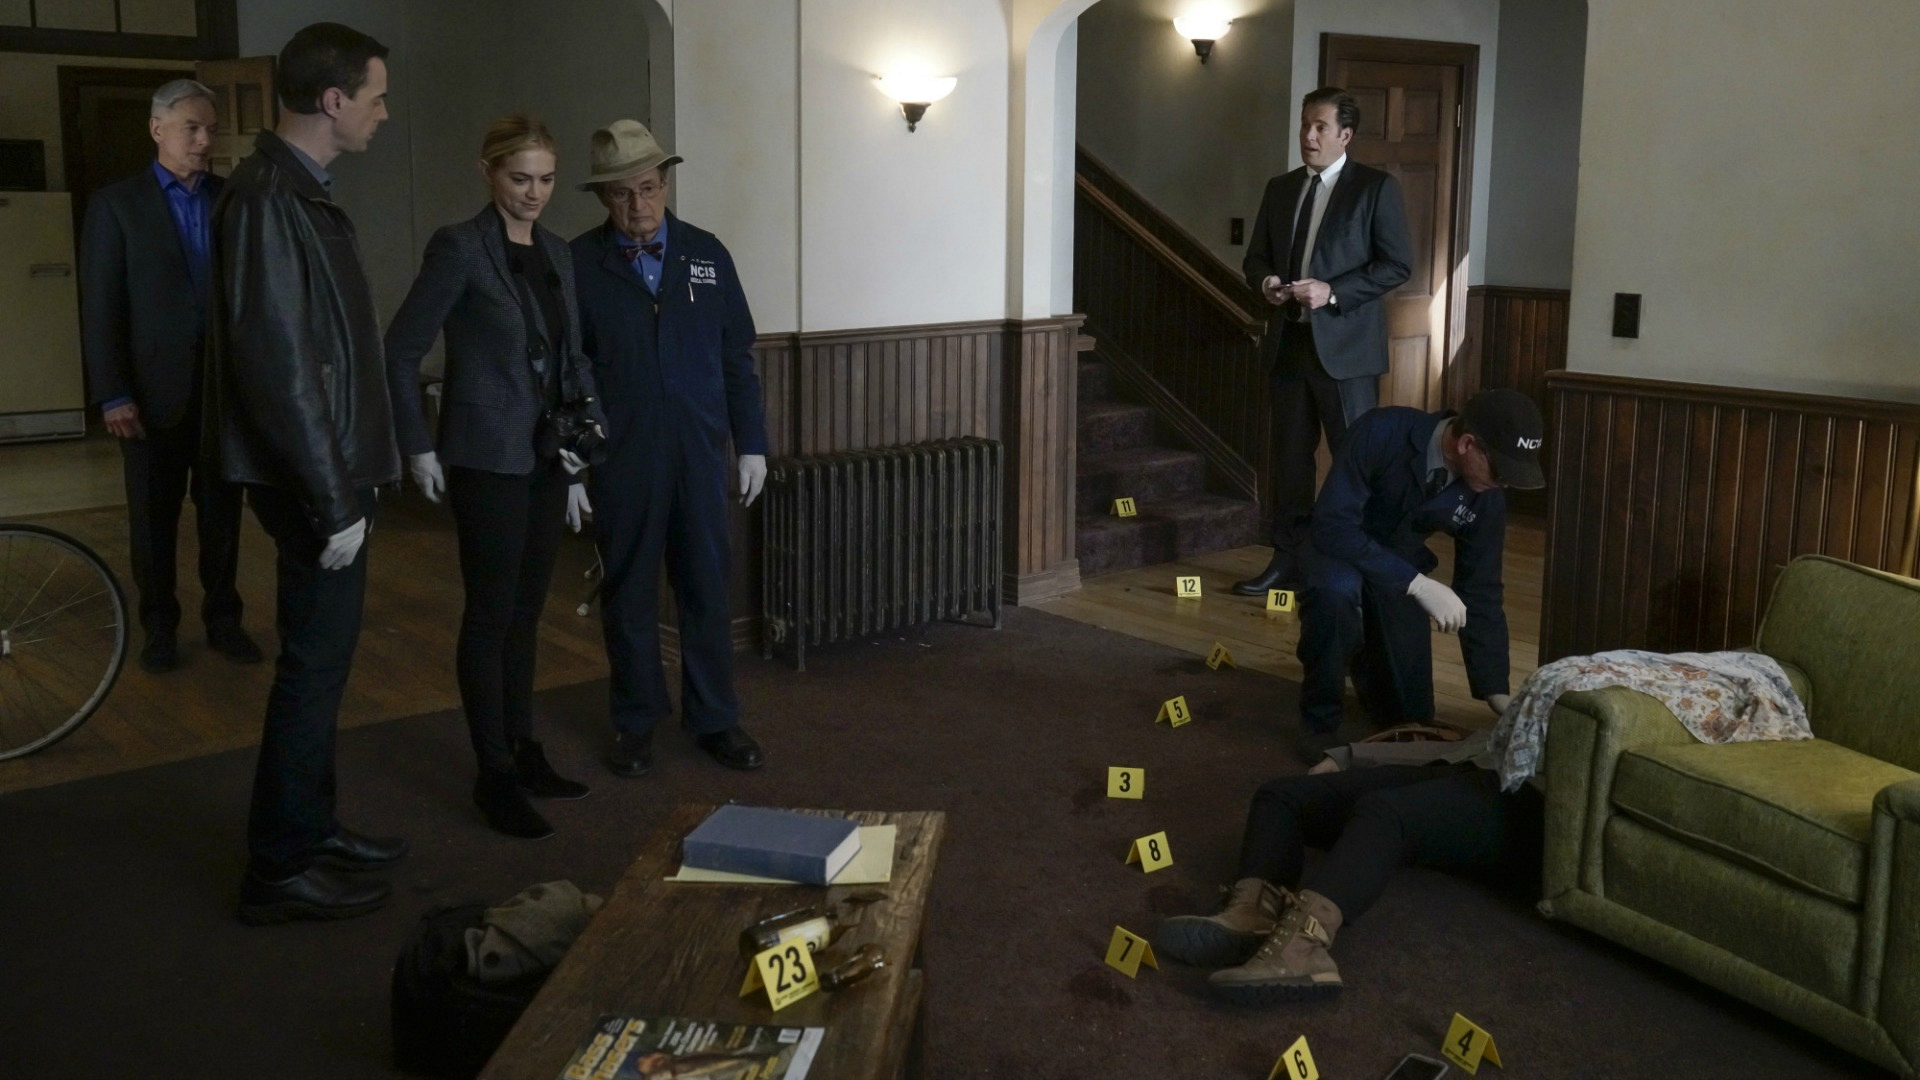 The team investigates a crime scene in Gibbs' own house.